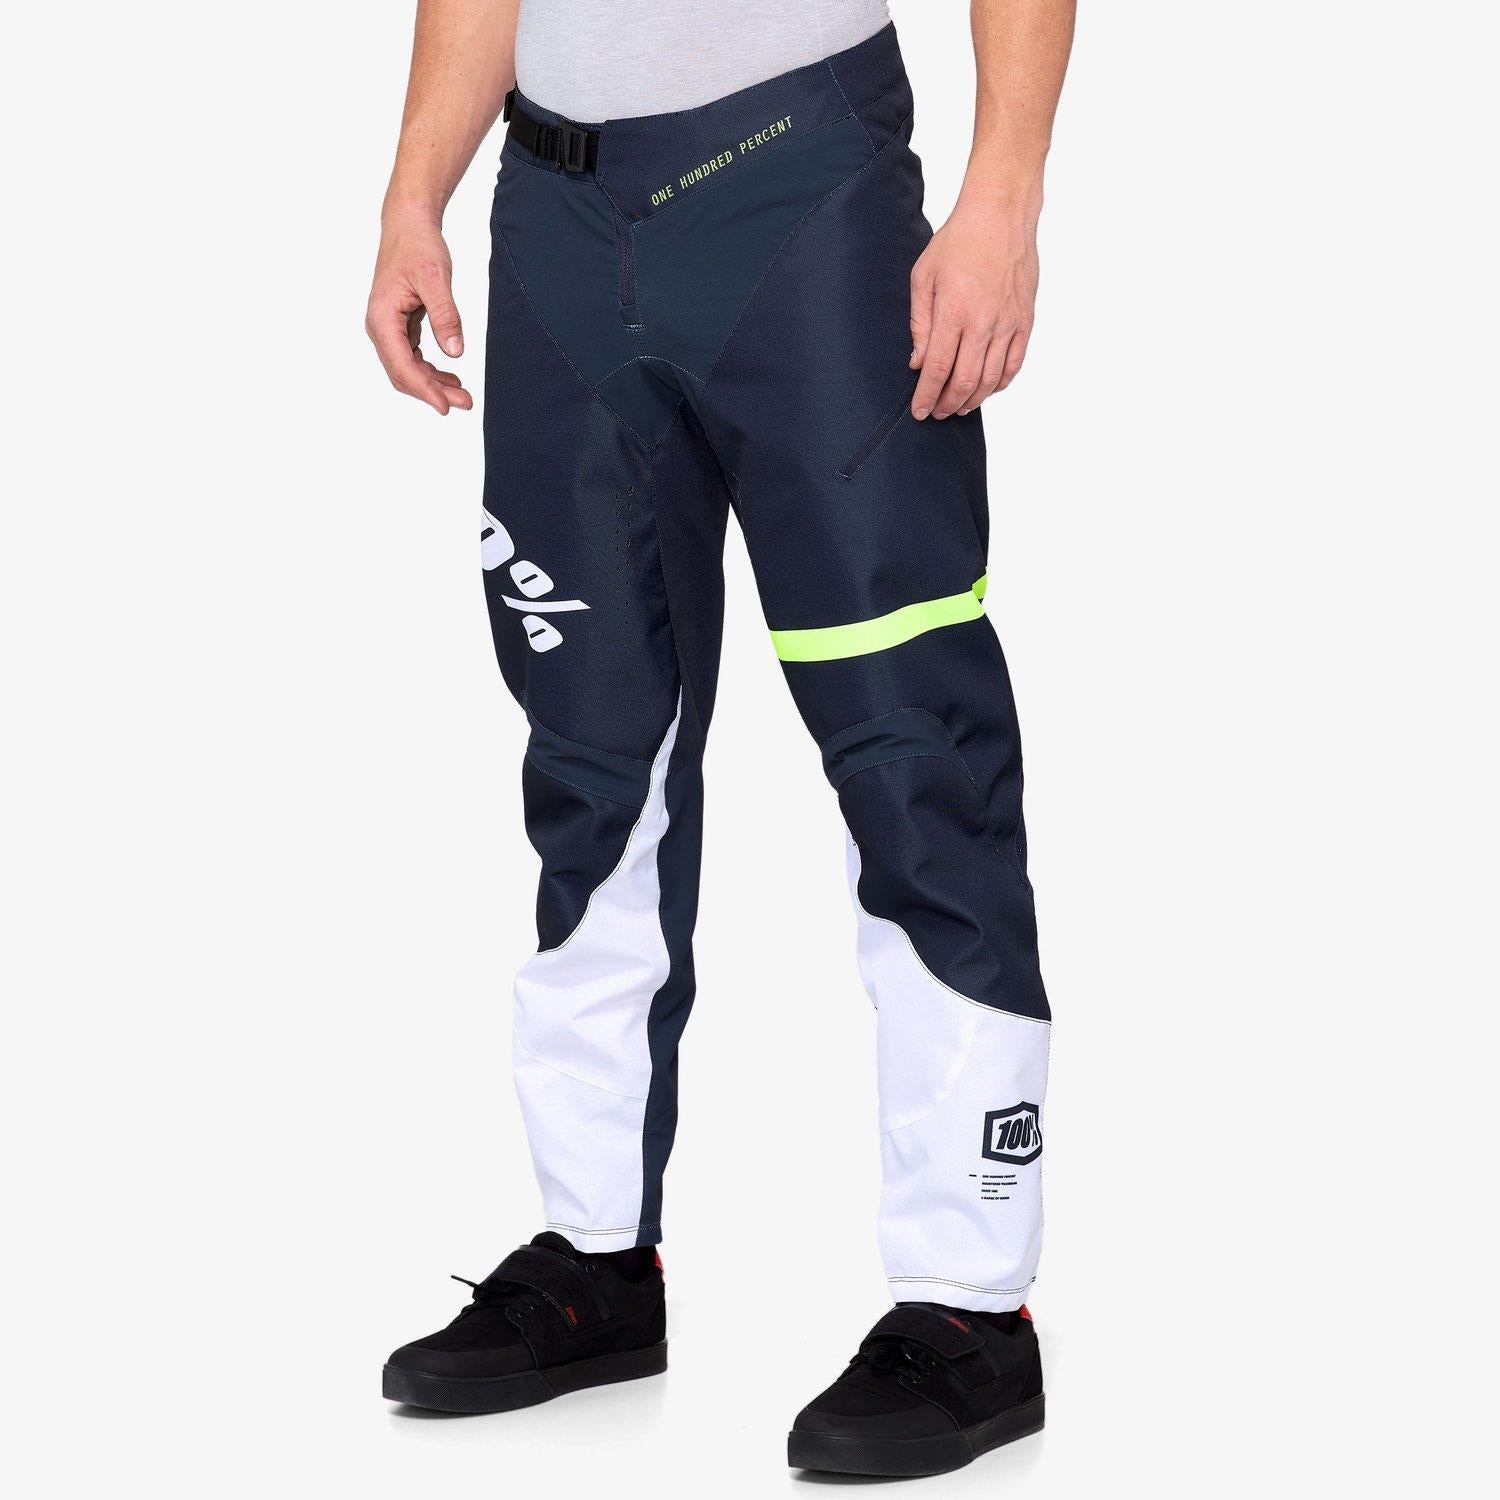 100% R-Core Race Youth Pants - Dark Blue/Yellow